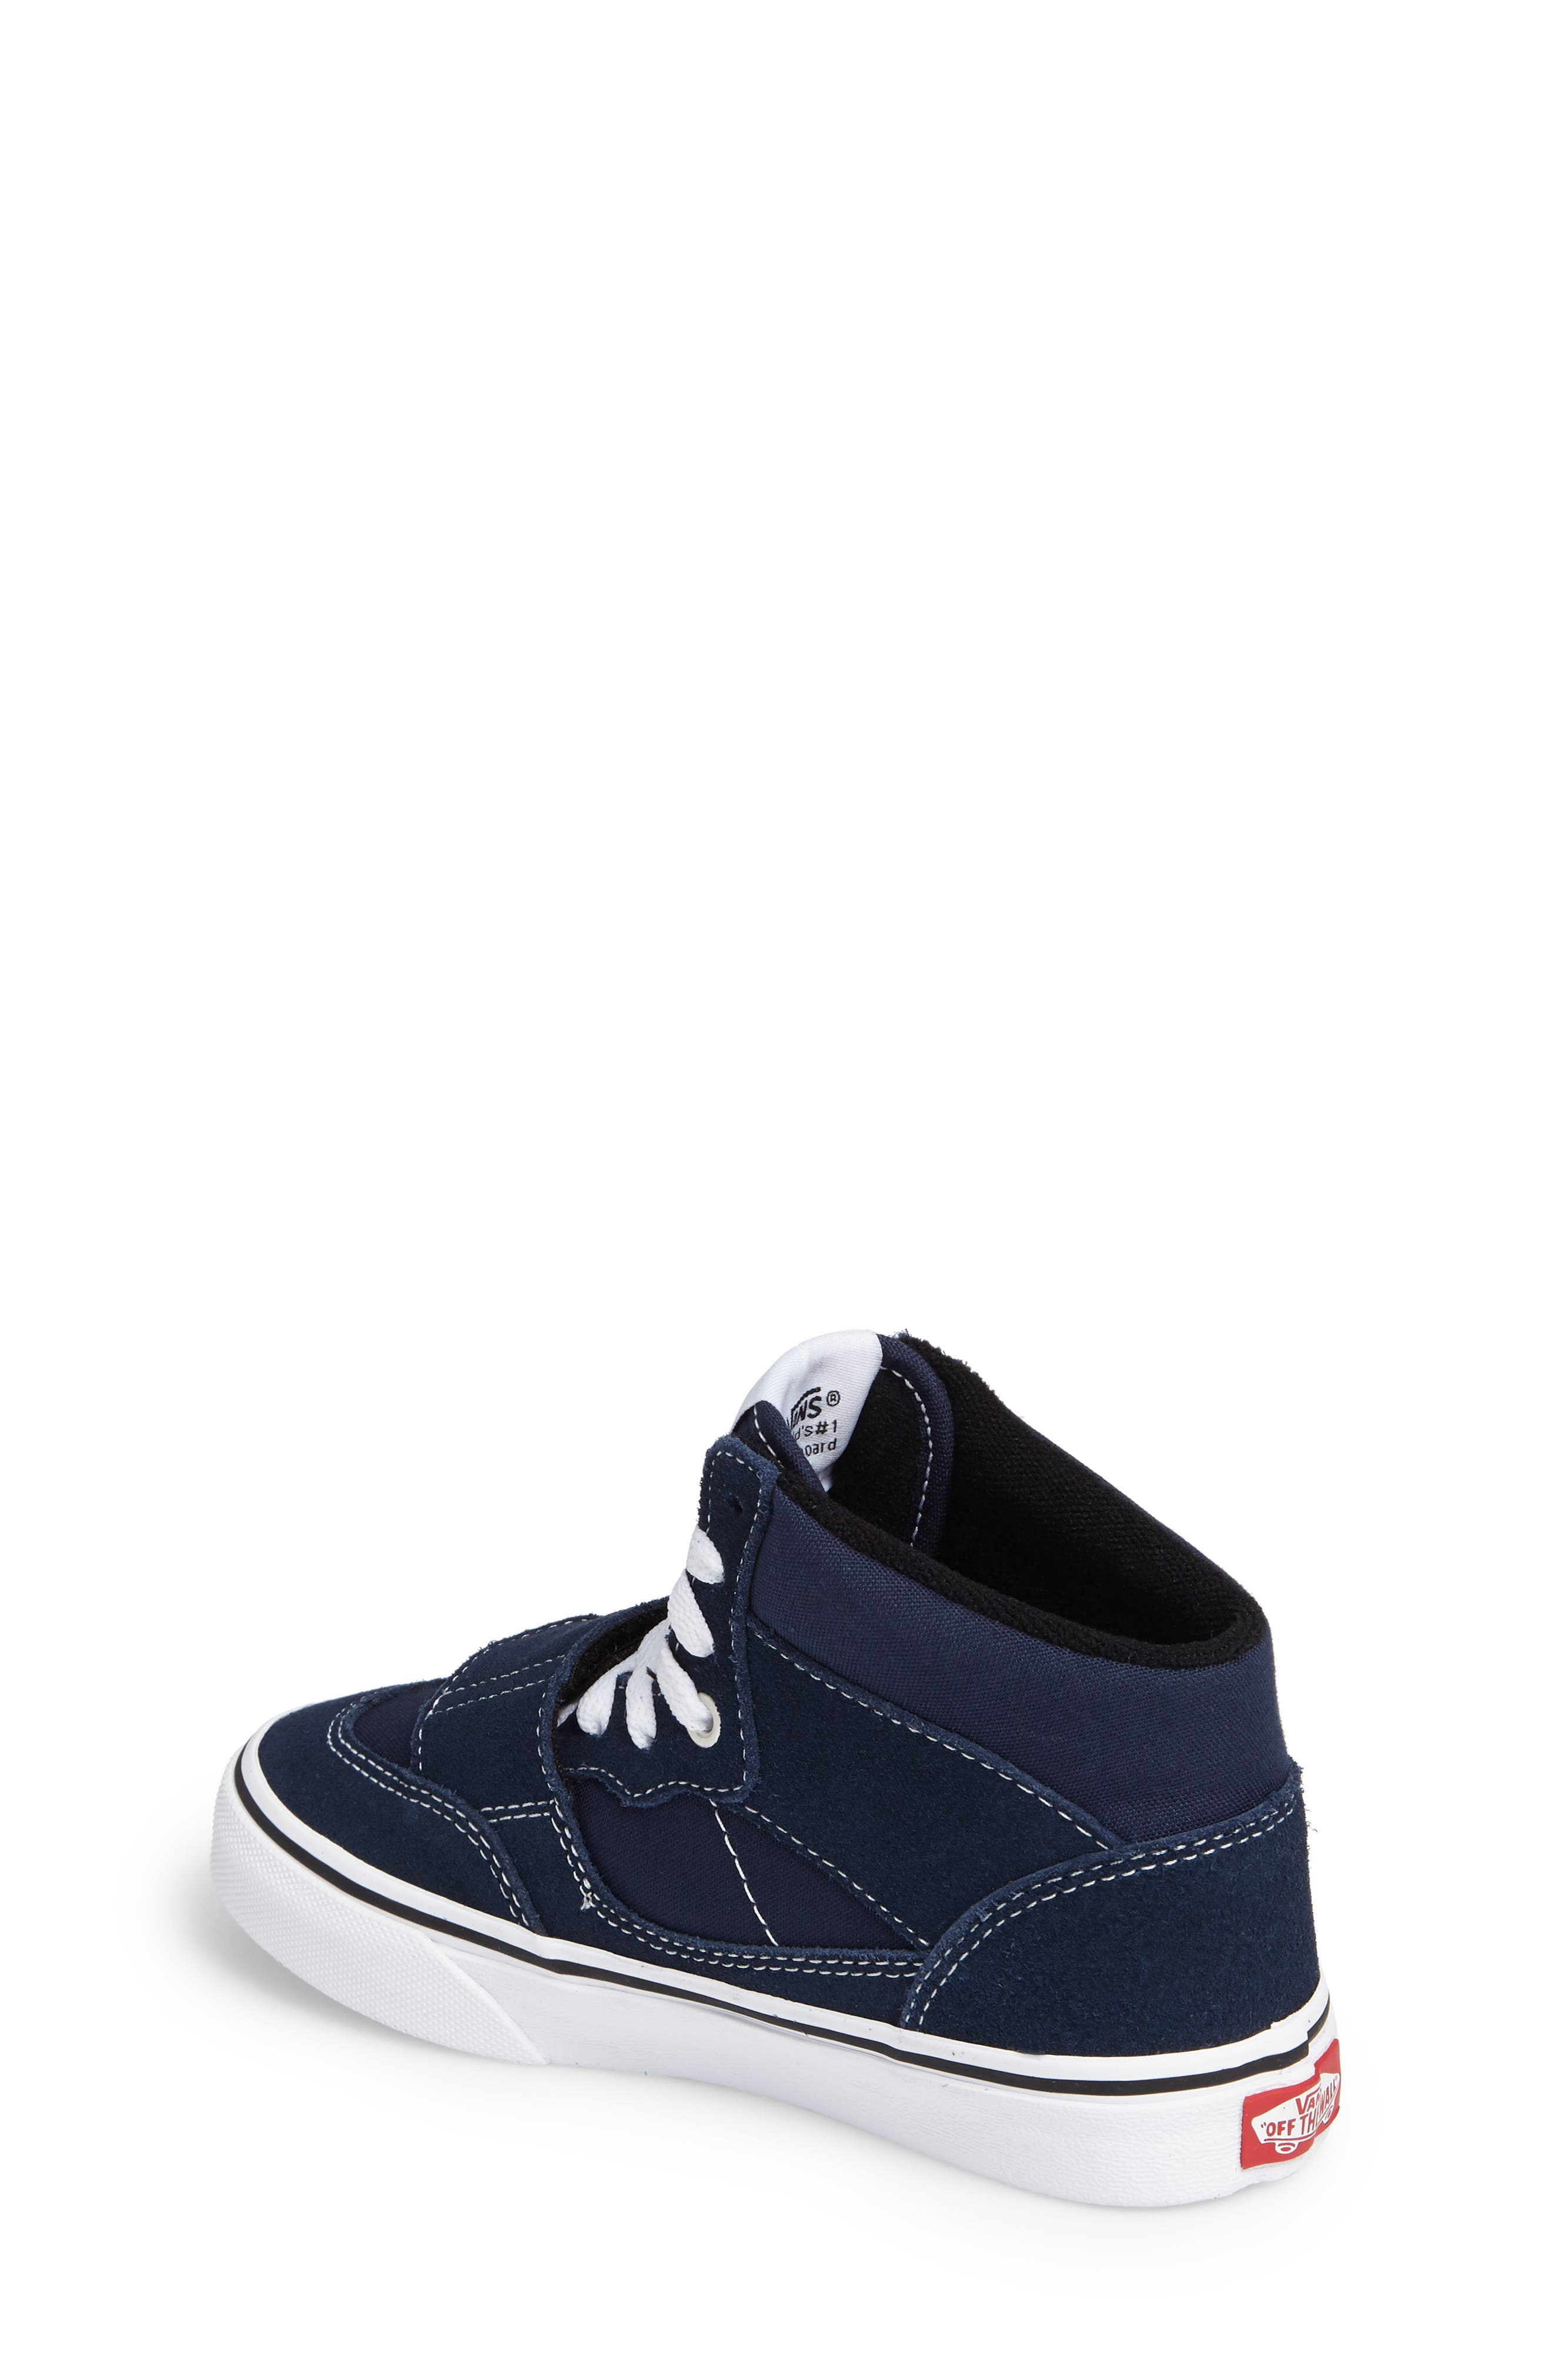 Mountain Edition Mid Top Sneaker,                             Alternate thumbnail 2, color,                             Dress Blue Canvas/ Suede